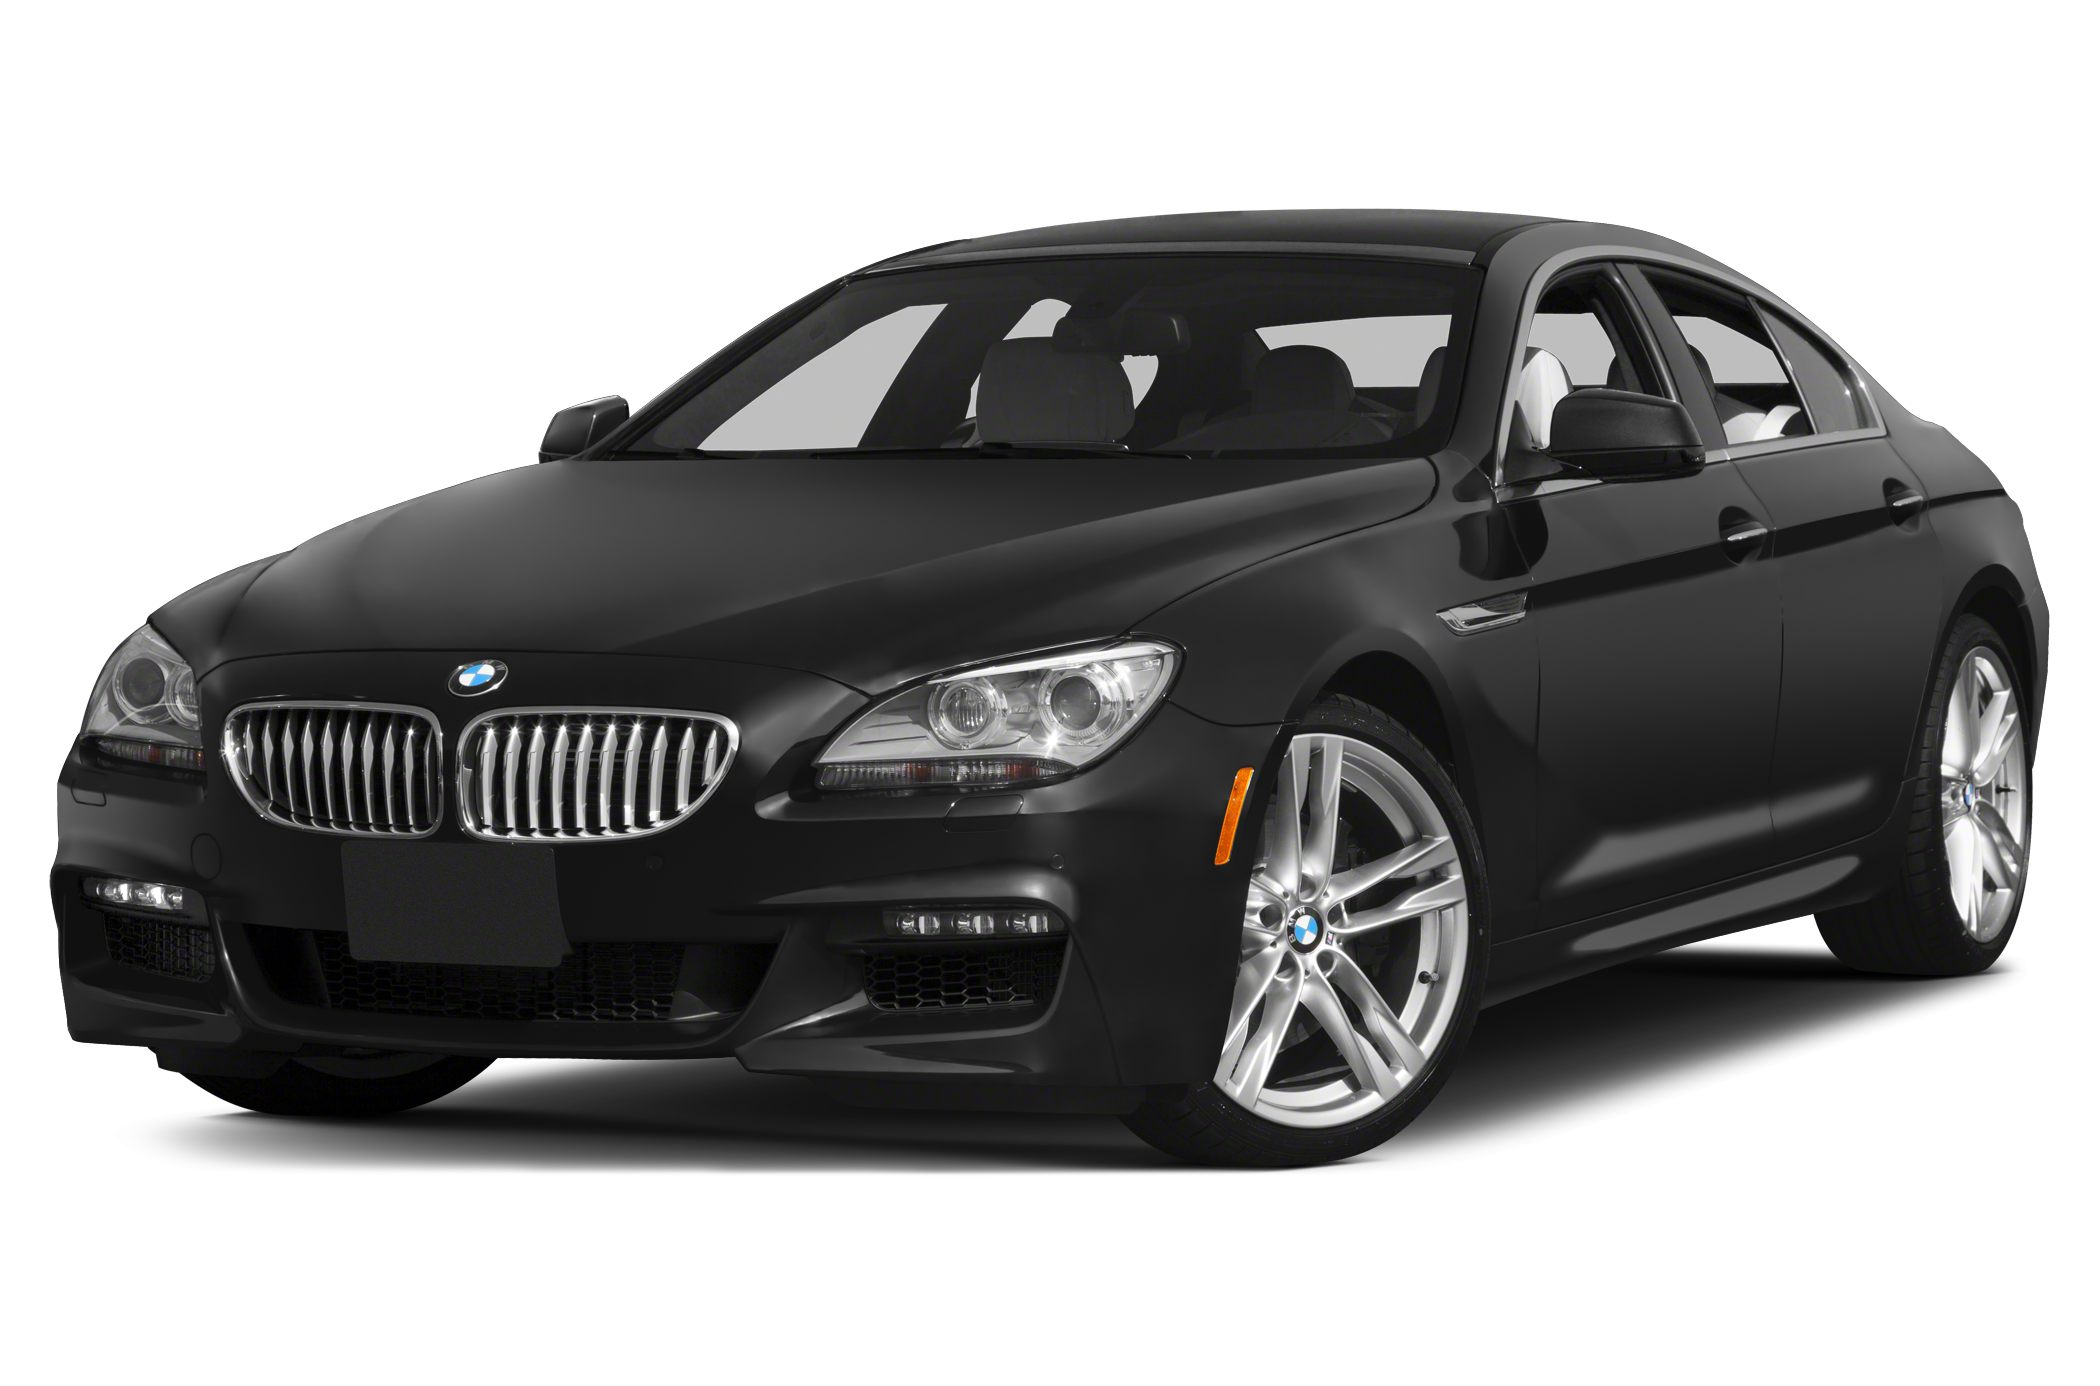 2015 BMW 650 Gran Coupe I XDrive Sedan for sale in Mechanicsburg for $99,300 with 16 miles.